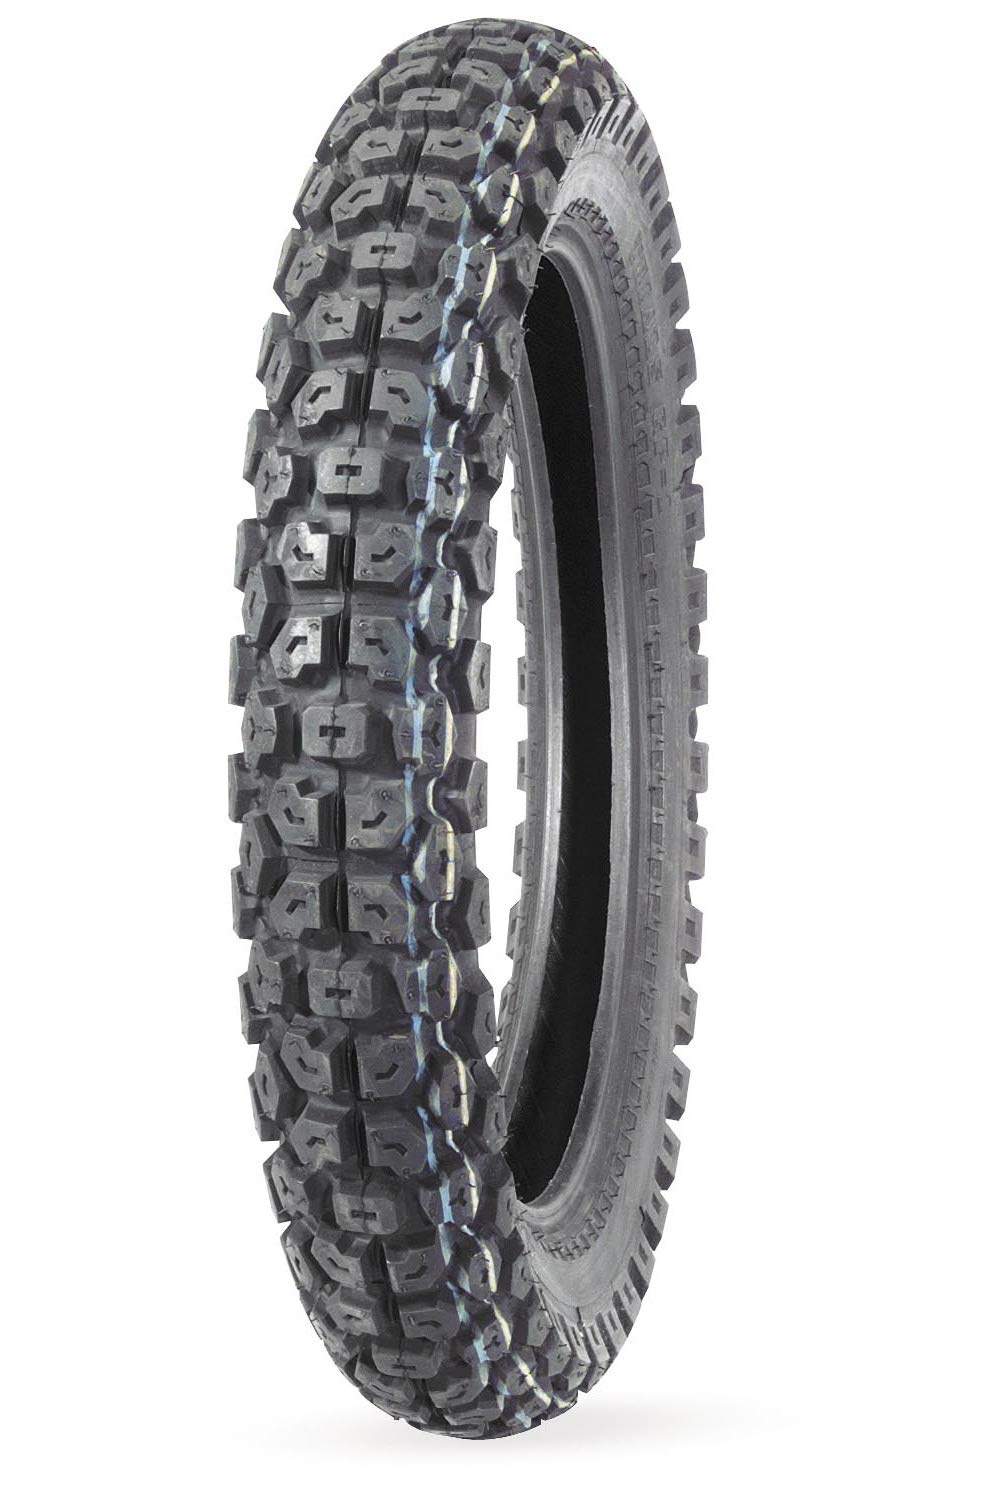 IRC GP-1 DUAL SPORT 80 ON/20 OFF TIRE REAR 3.50-18 56L IRC096